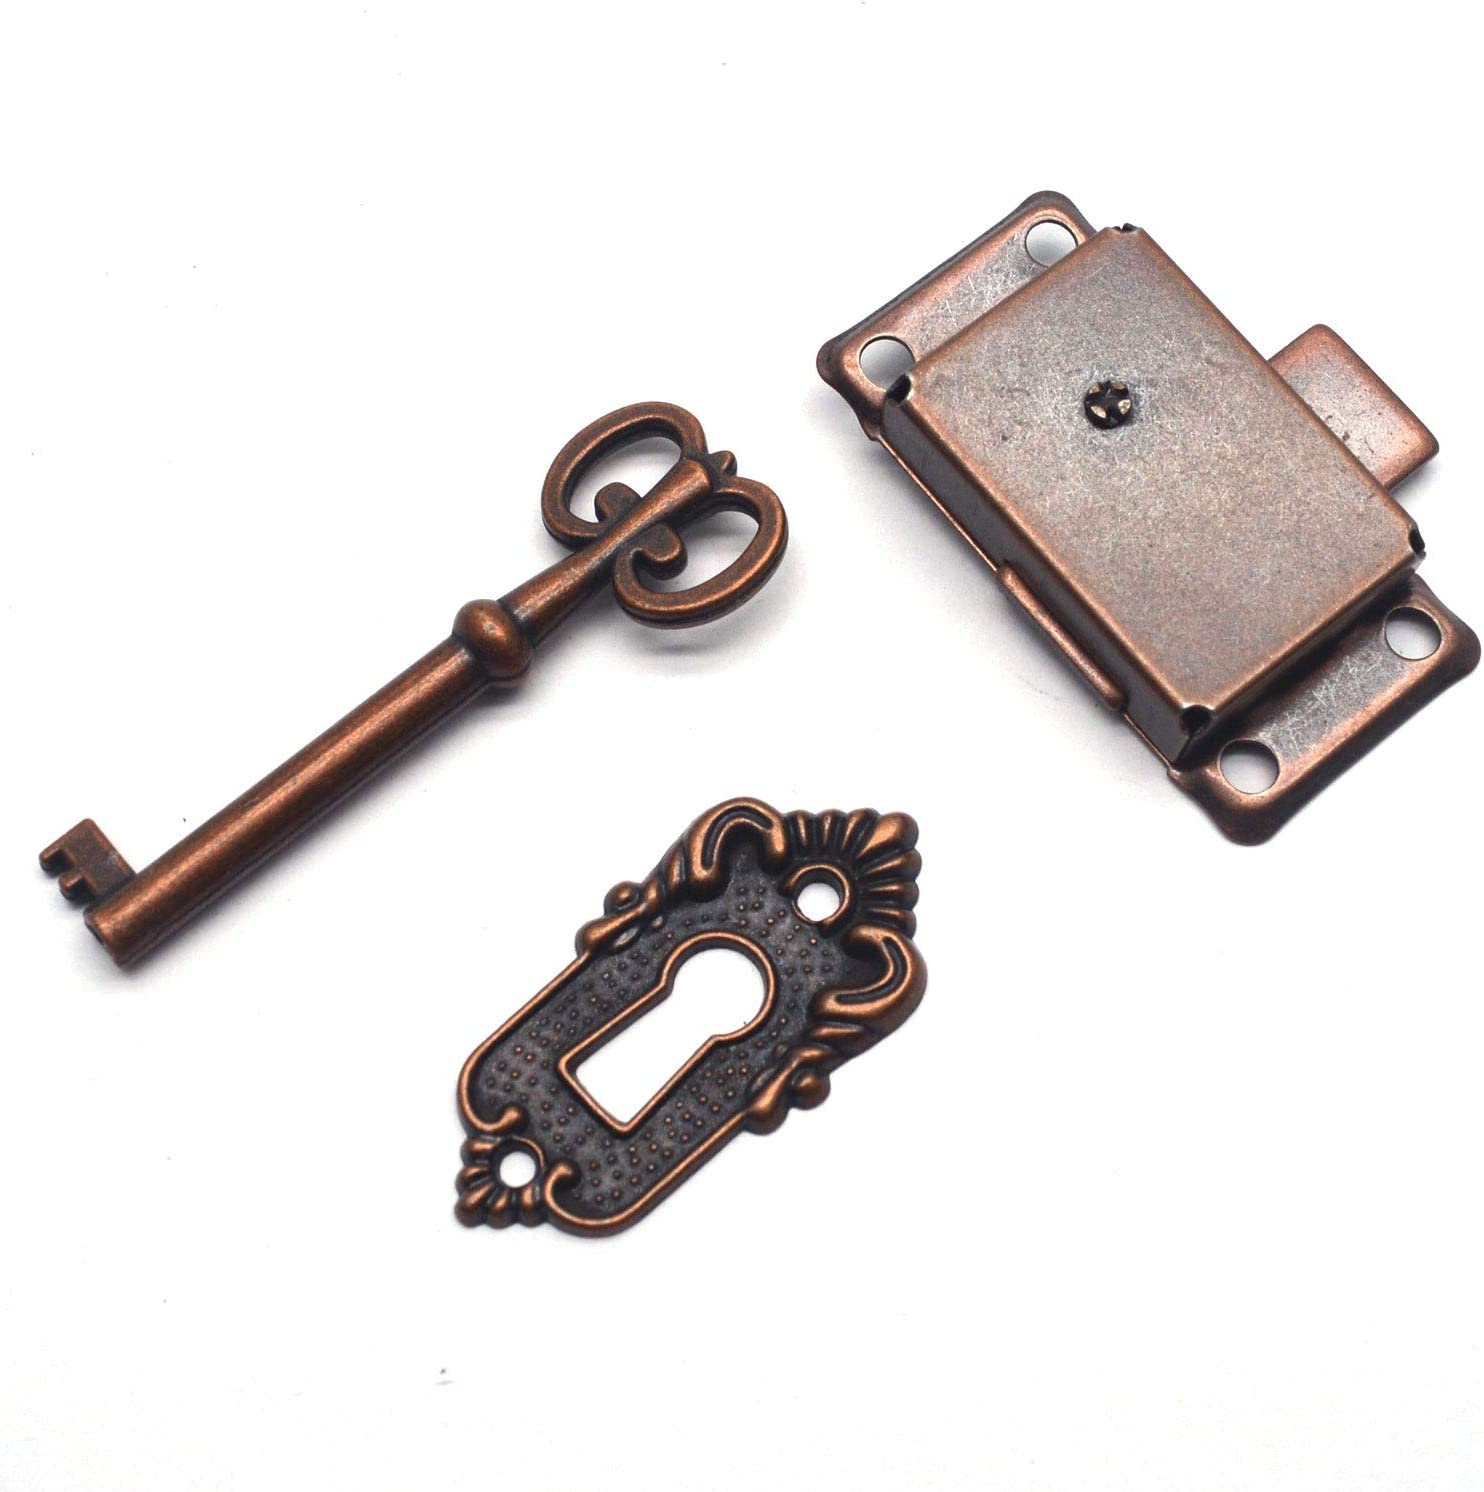 """Tulead Furniture Lock Vintage Lock for Jewelry Antique Red Bronze Cabinet Lock Old Lock Replacement Square-Type Locker Door Lock 2"""" Length with Mounting Screws"""